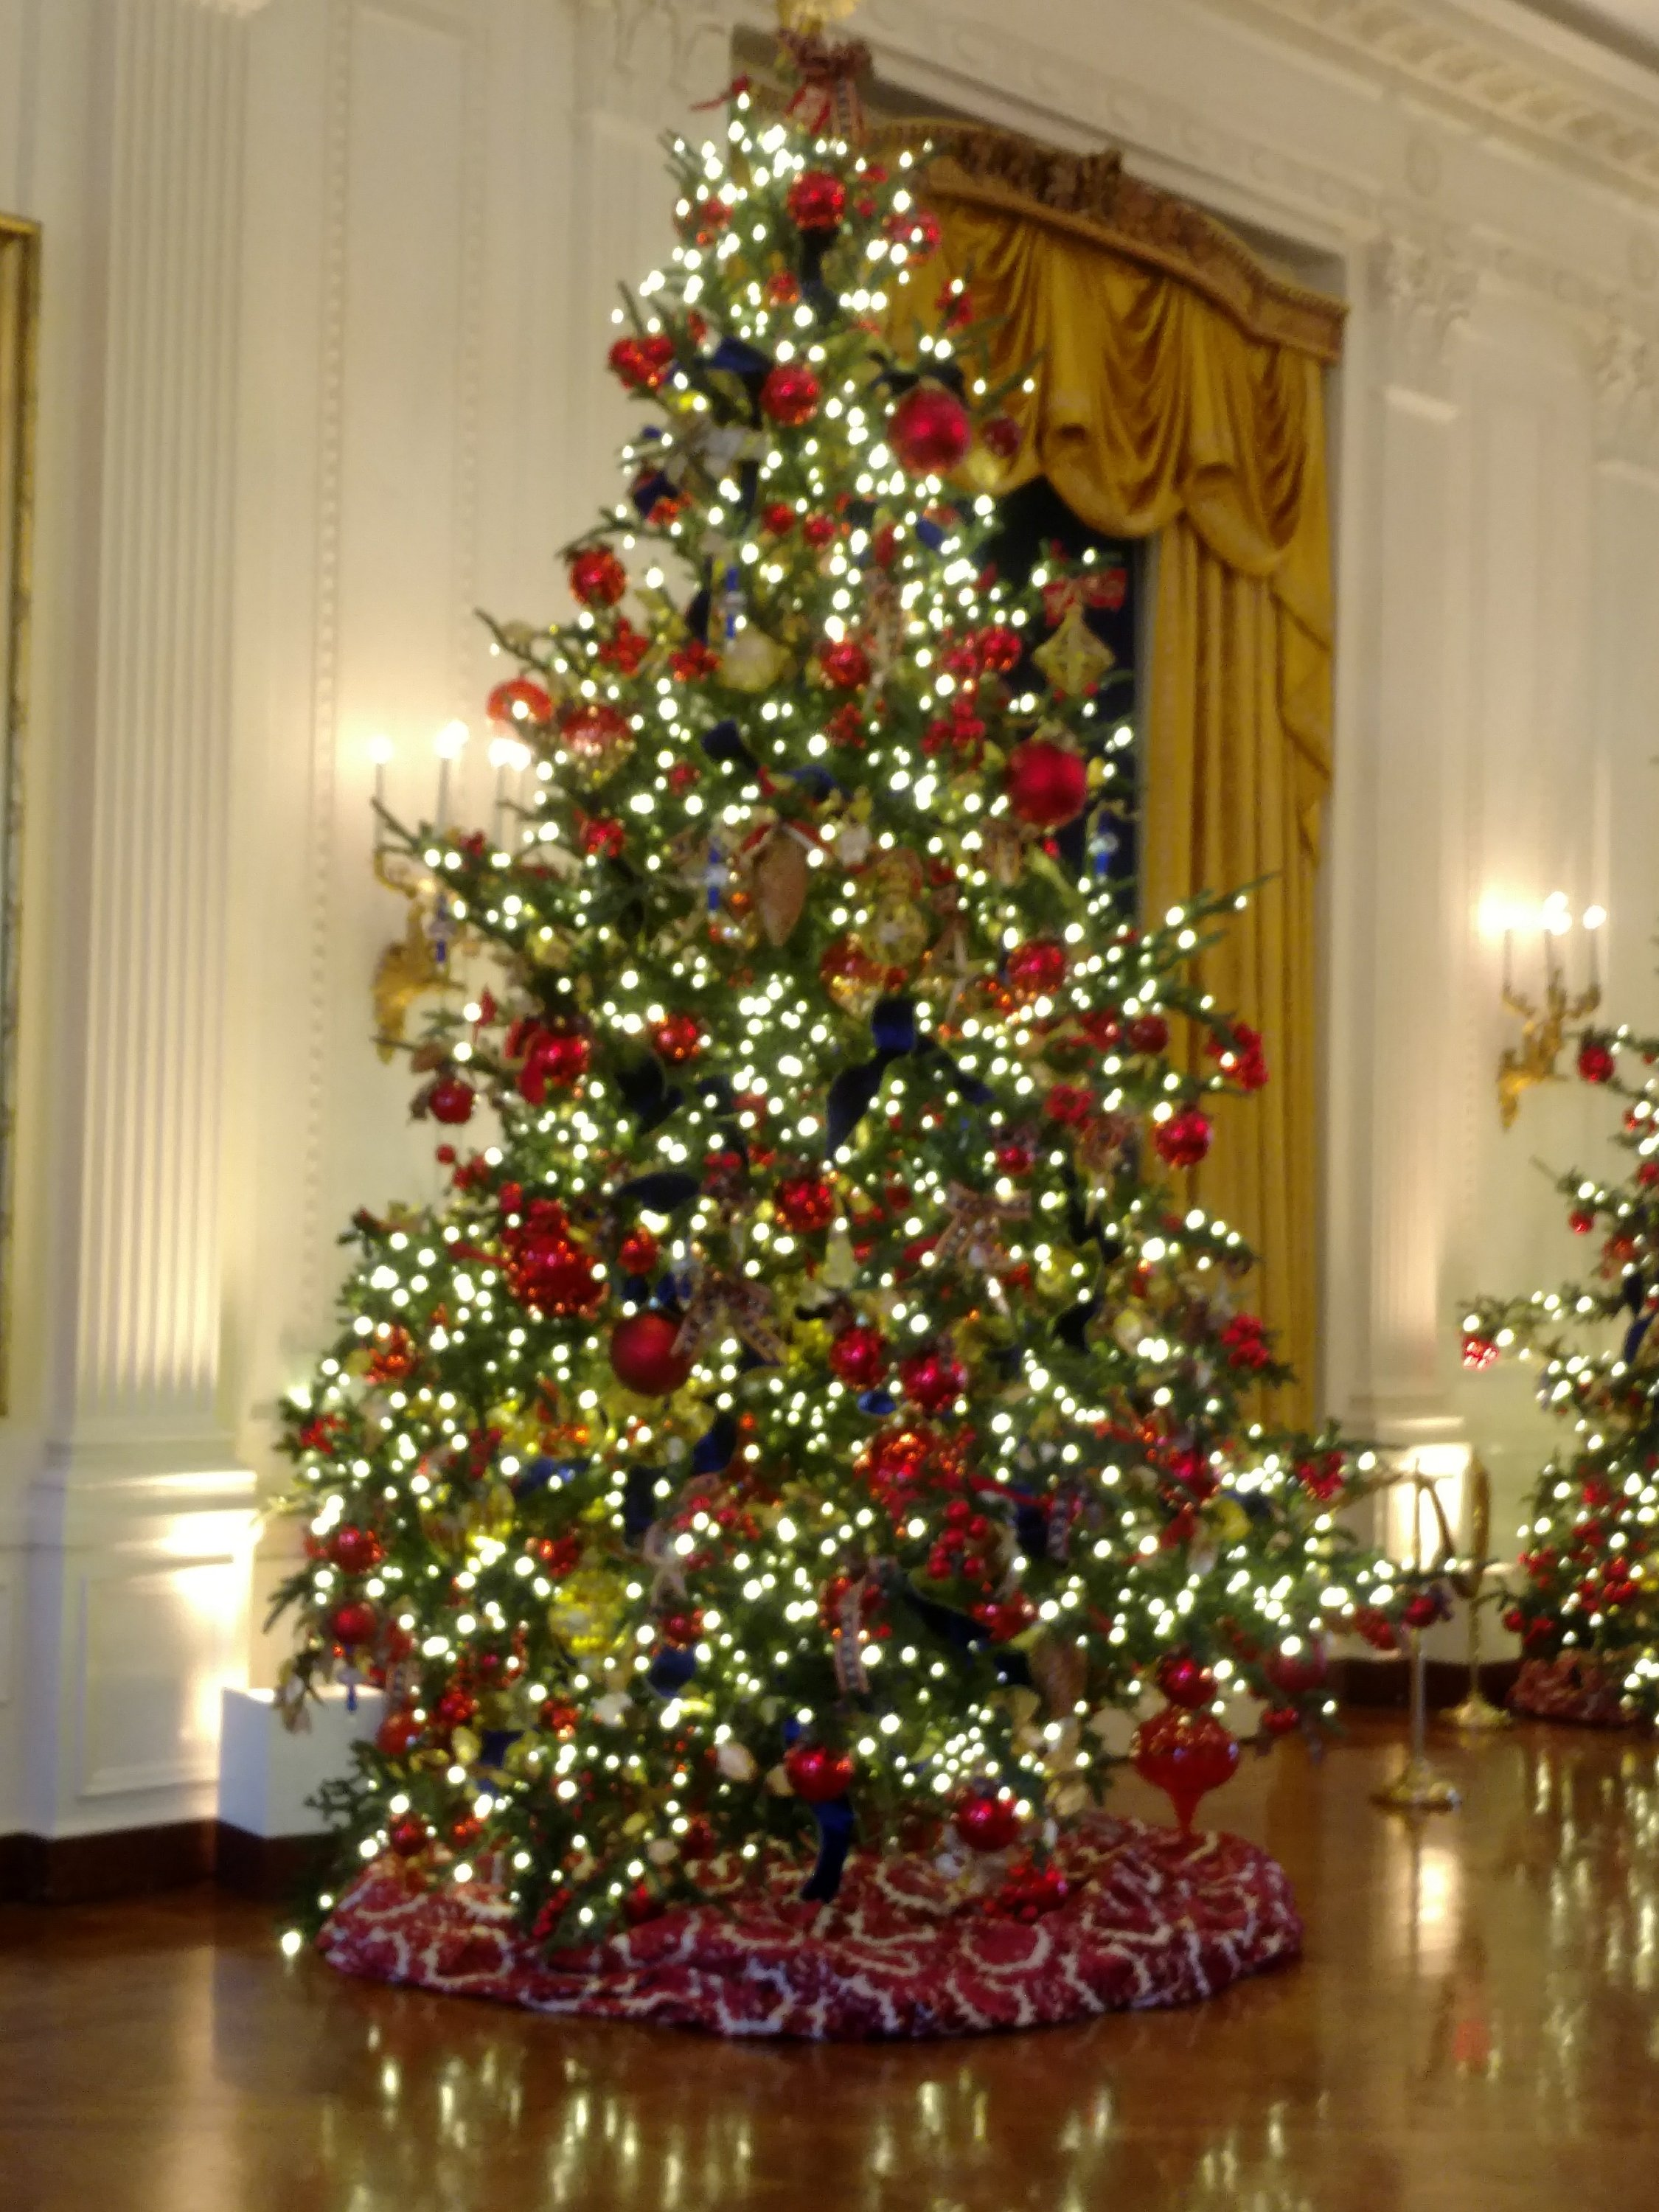 One of the many Christmas trees at the White house